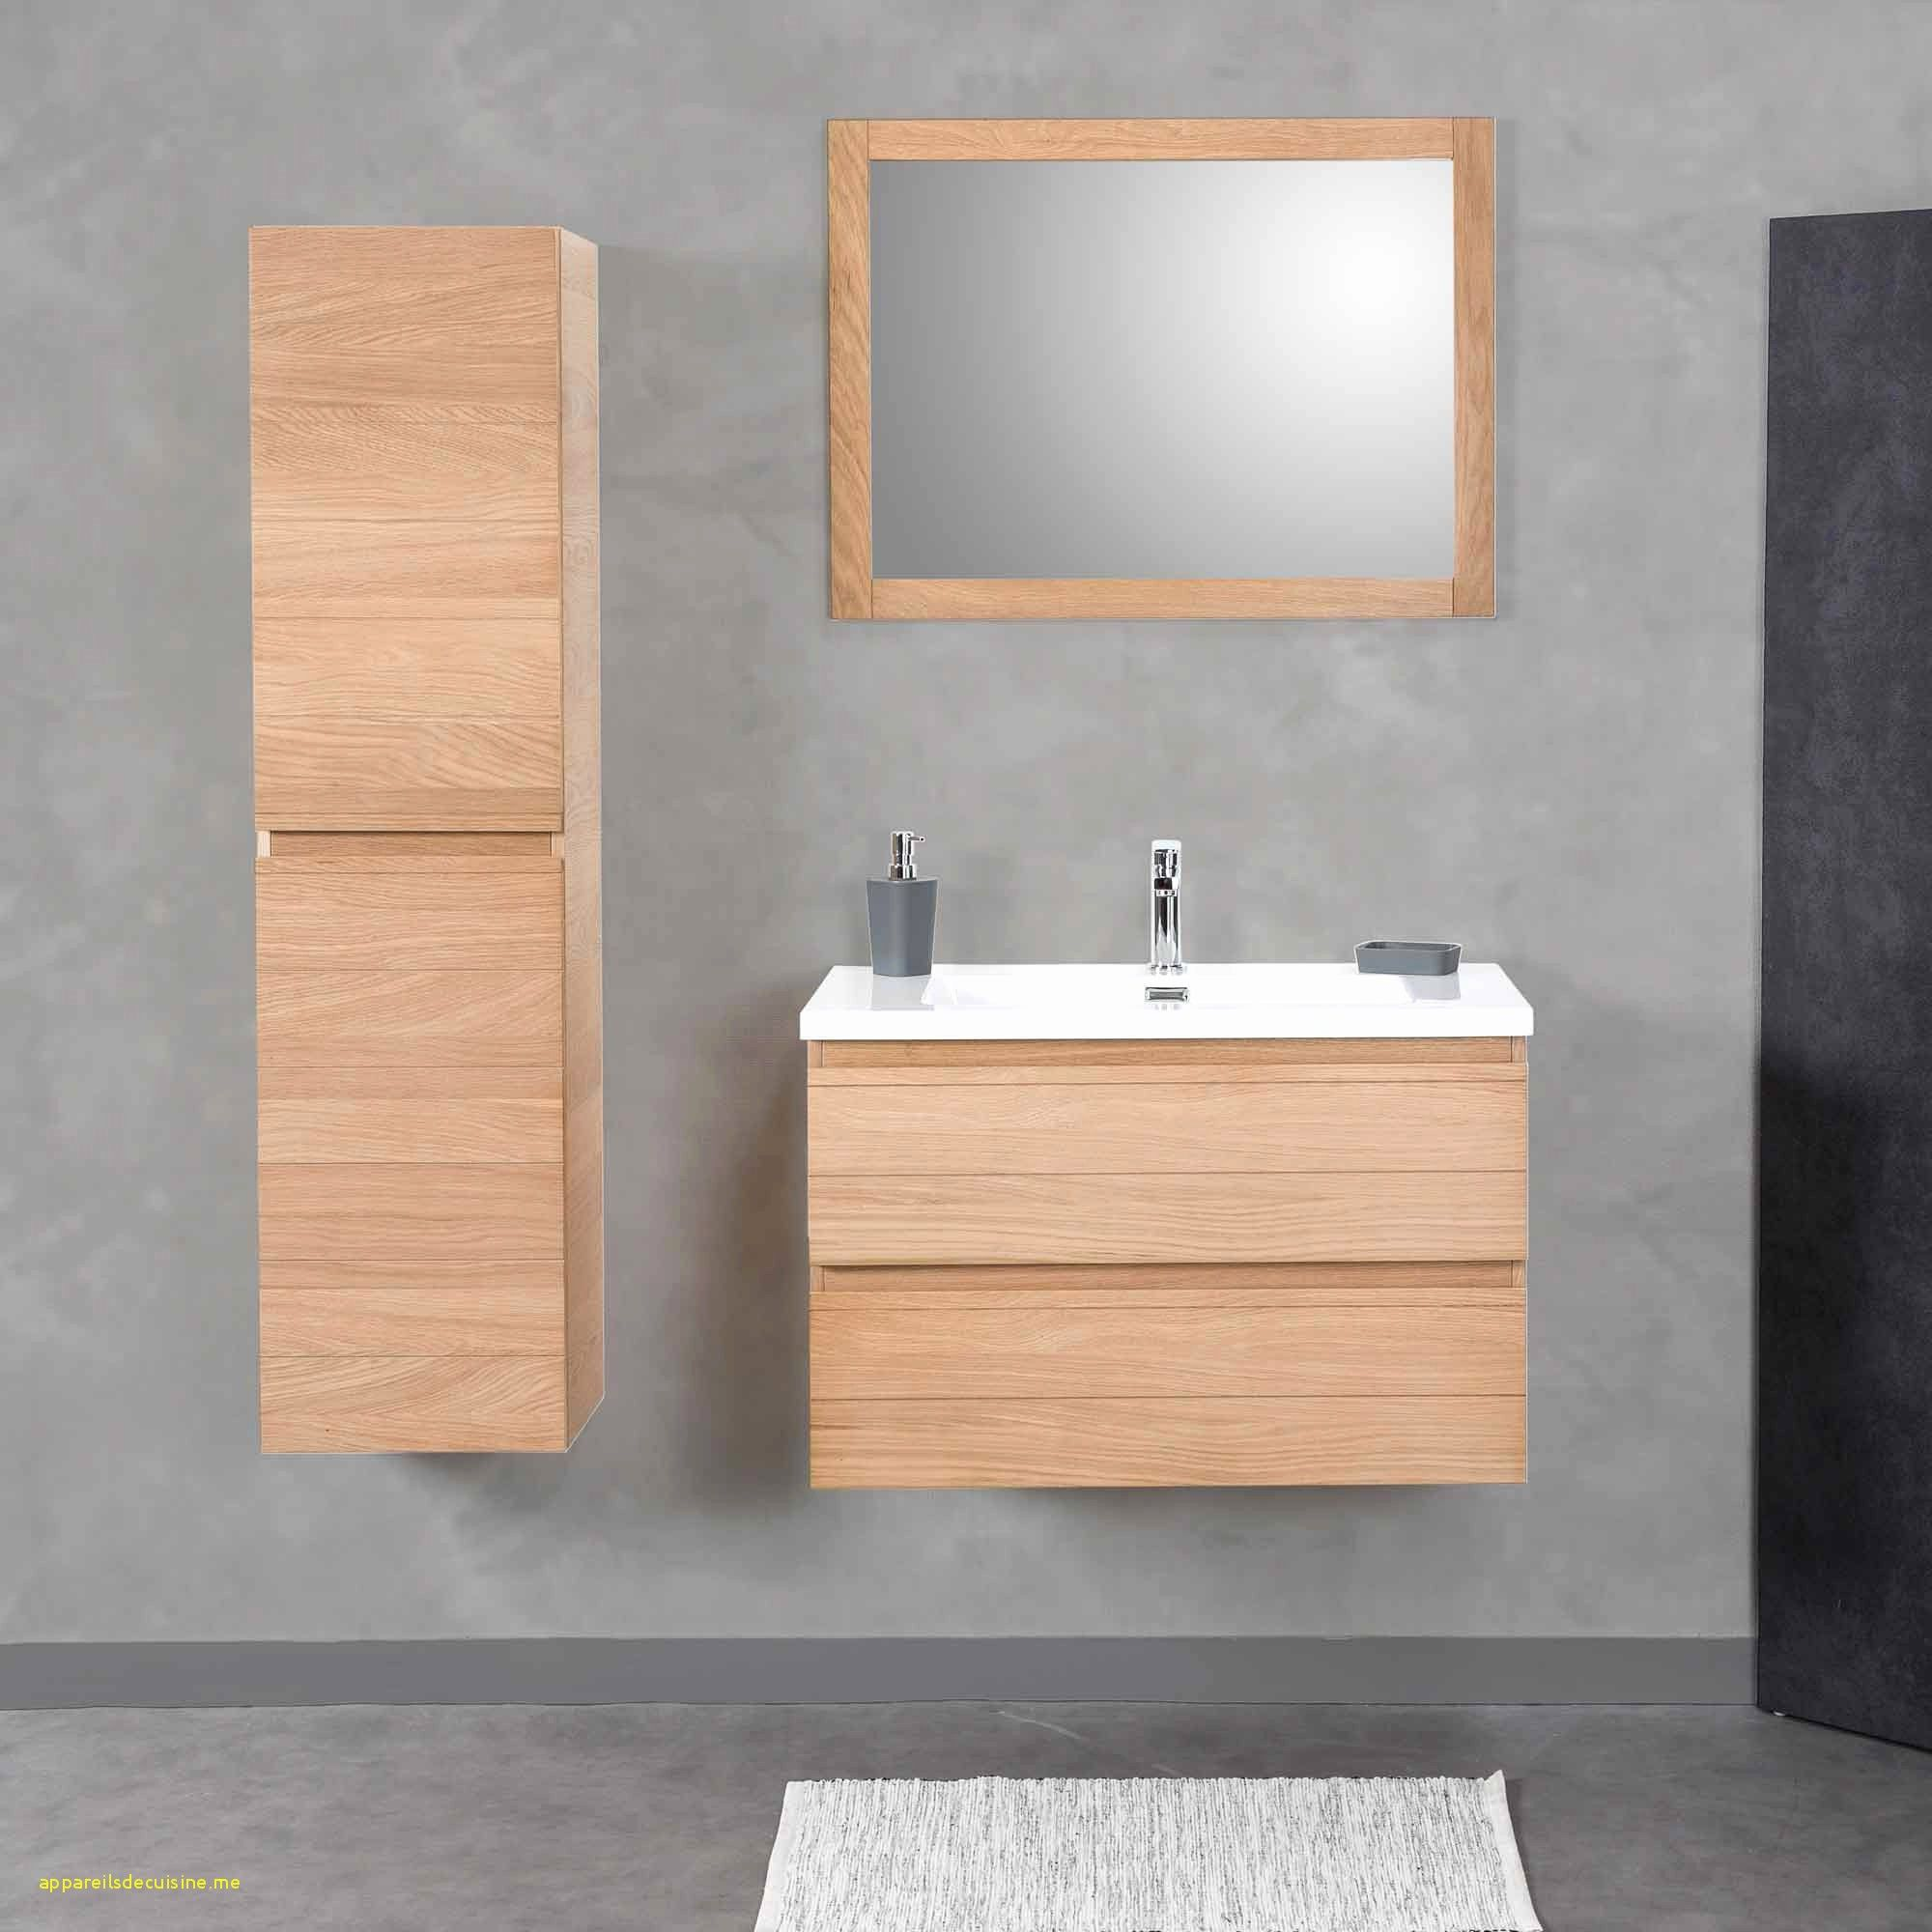 Beautiful Meuble Salle De Bain Profondeur 35 Cm Bathroom Remodel Designs Bathroom Furniture Bathroom